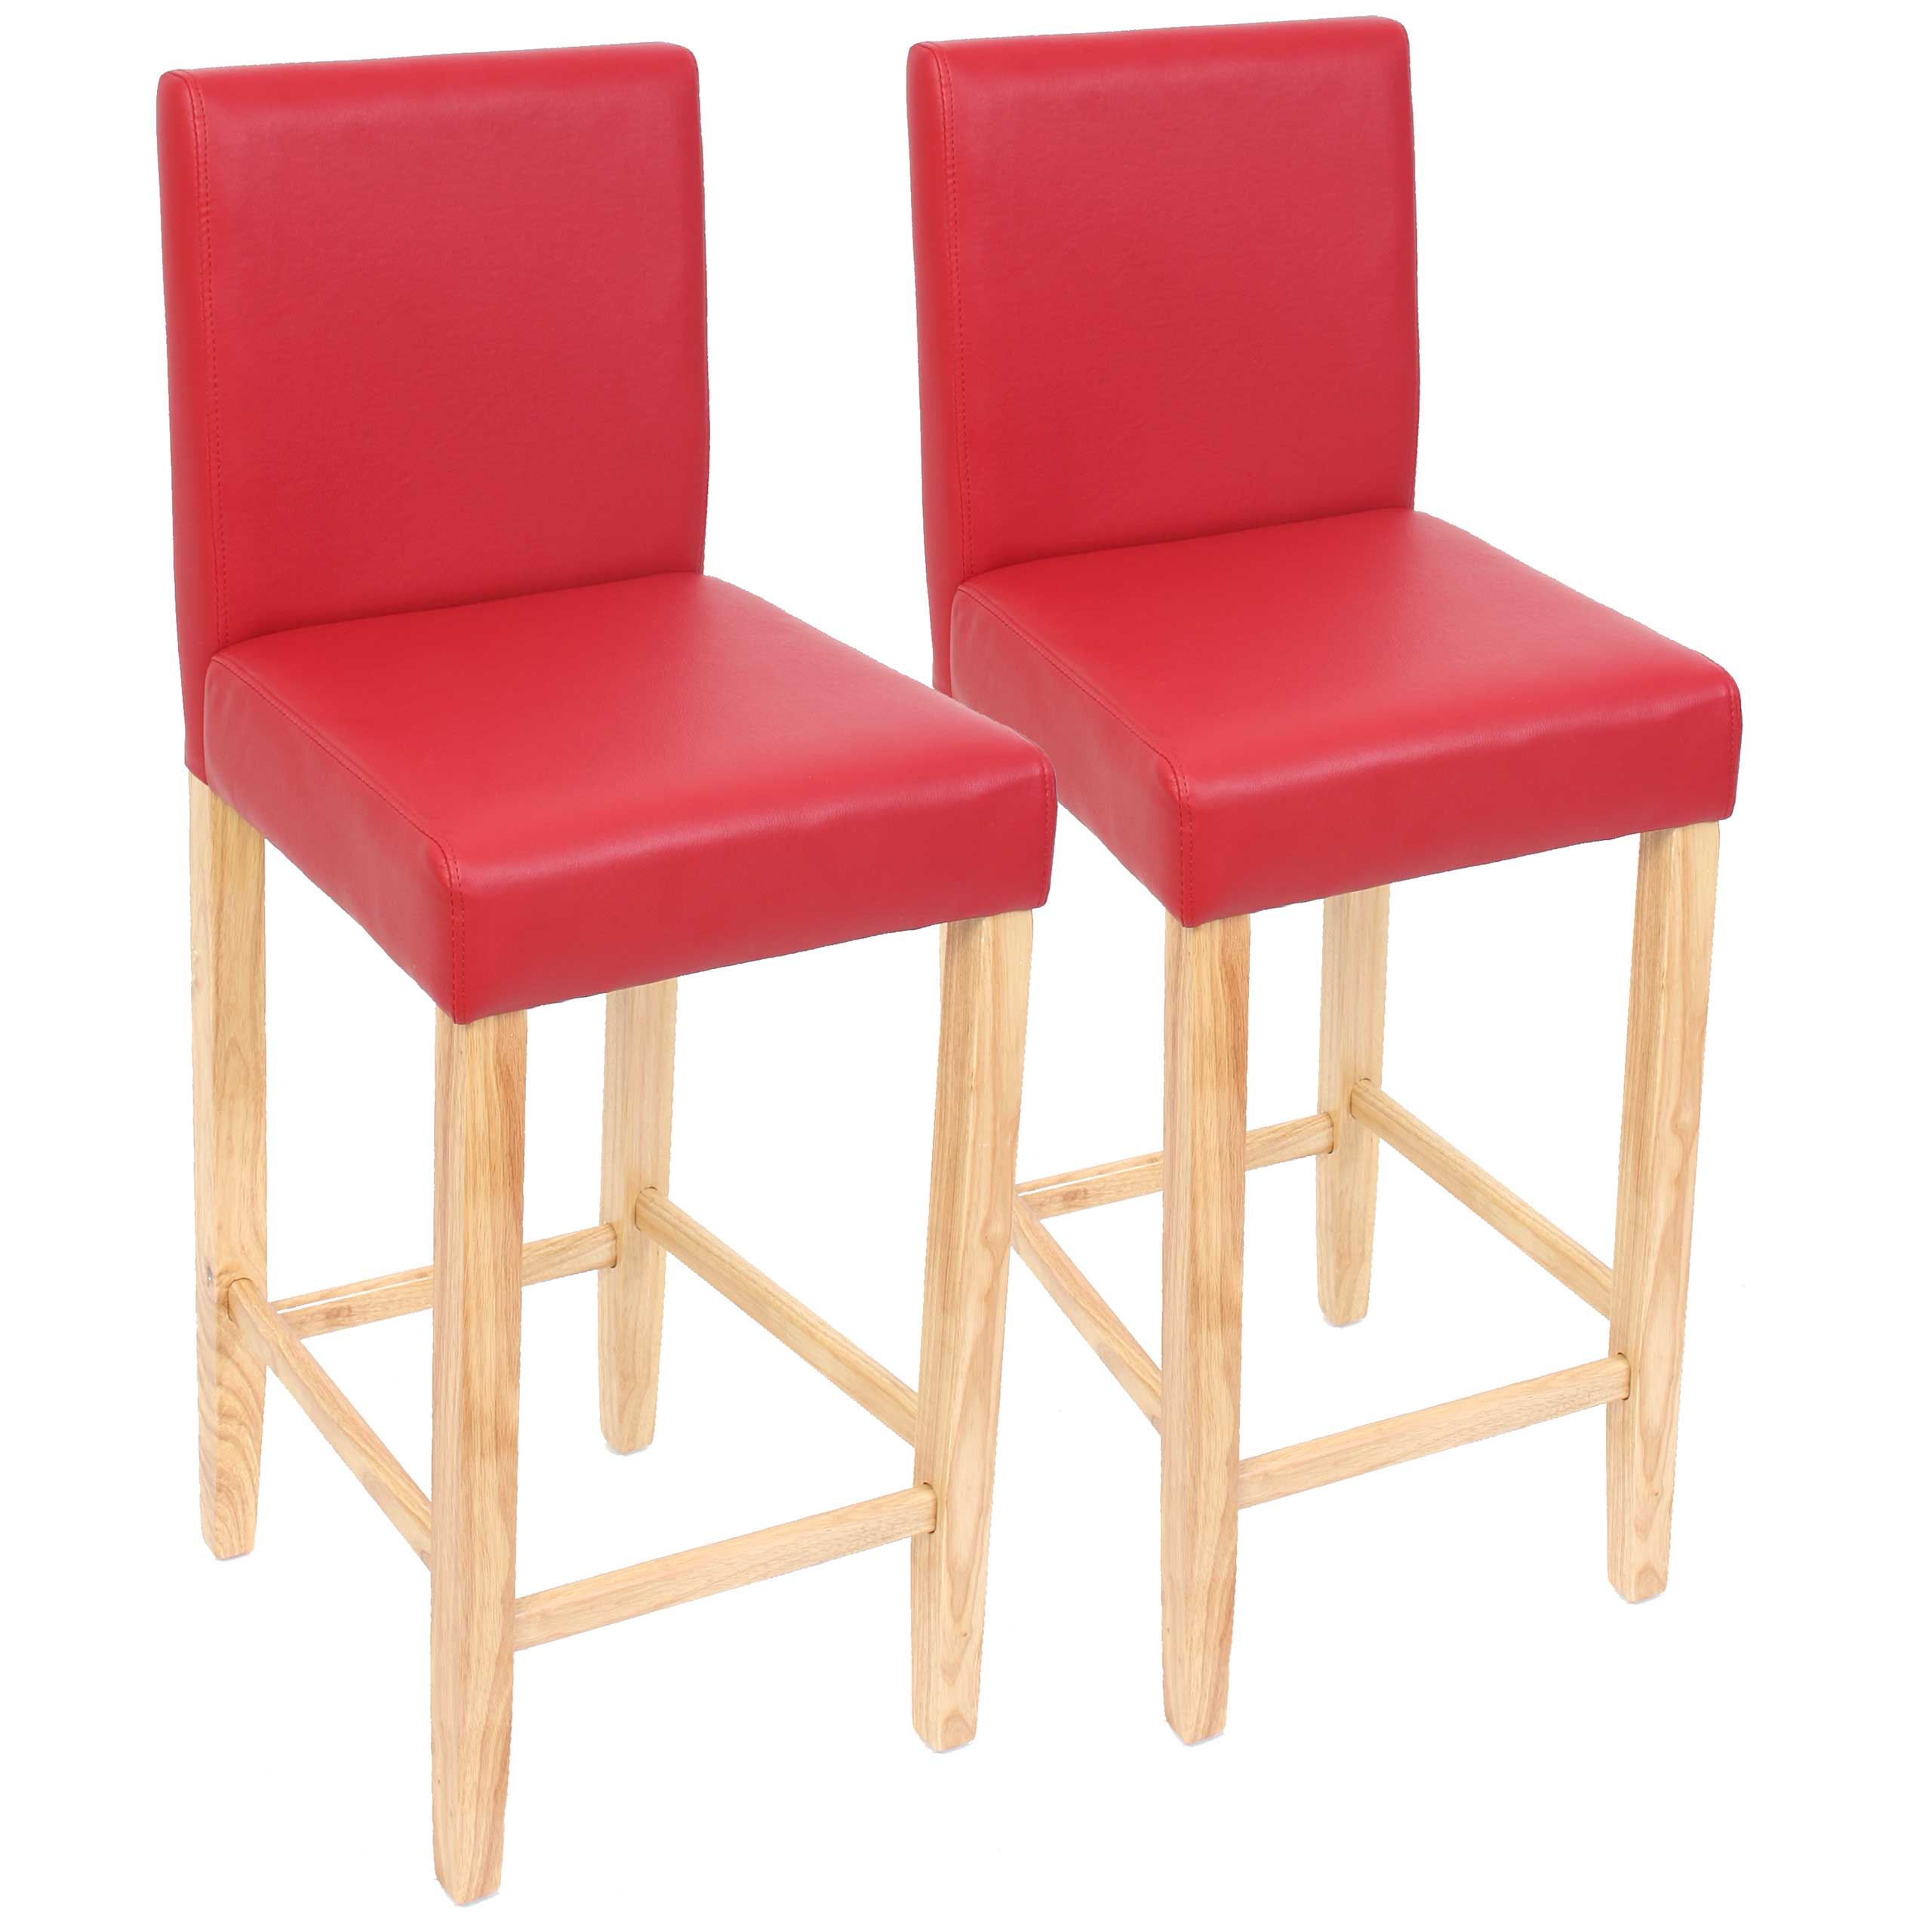 2x barhocker barstuhl tresenhocker bar stuhl m37 leder rot helle f e ebay. Black Bedroom Furniture Sets. Home Design Ideas